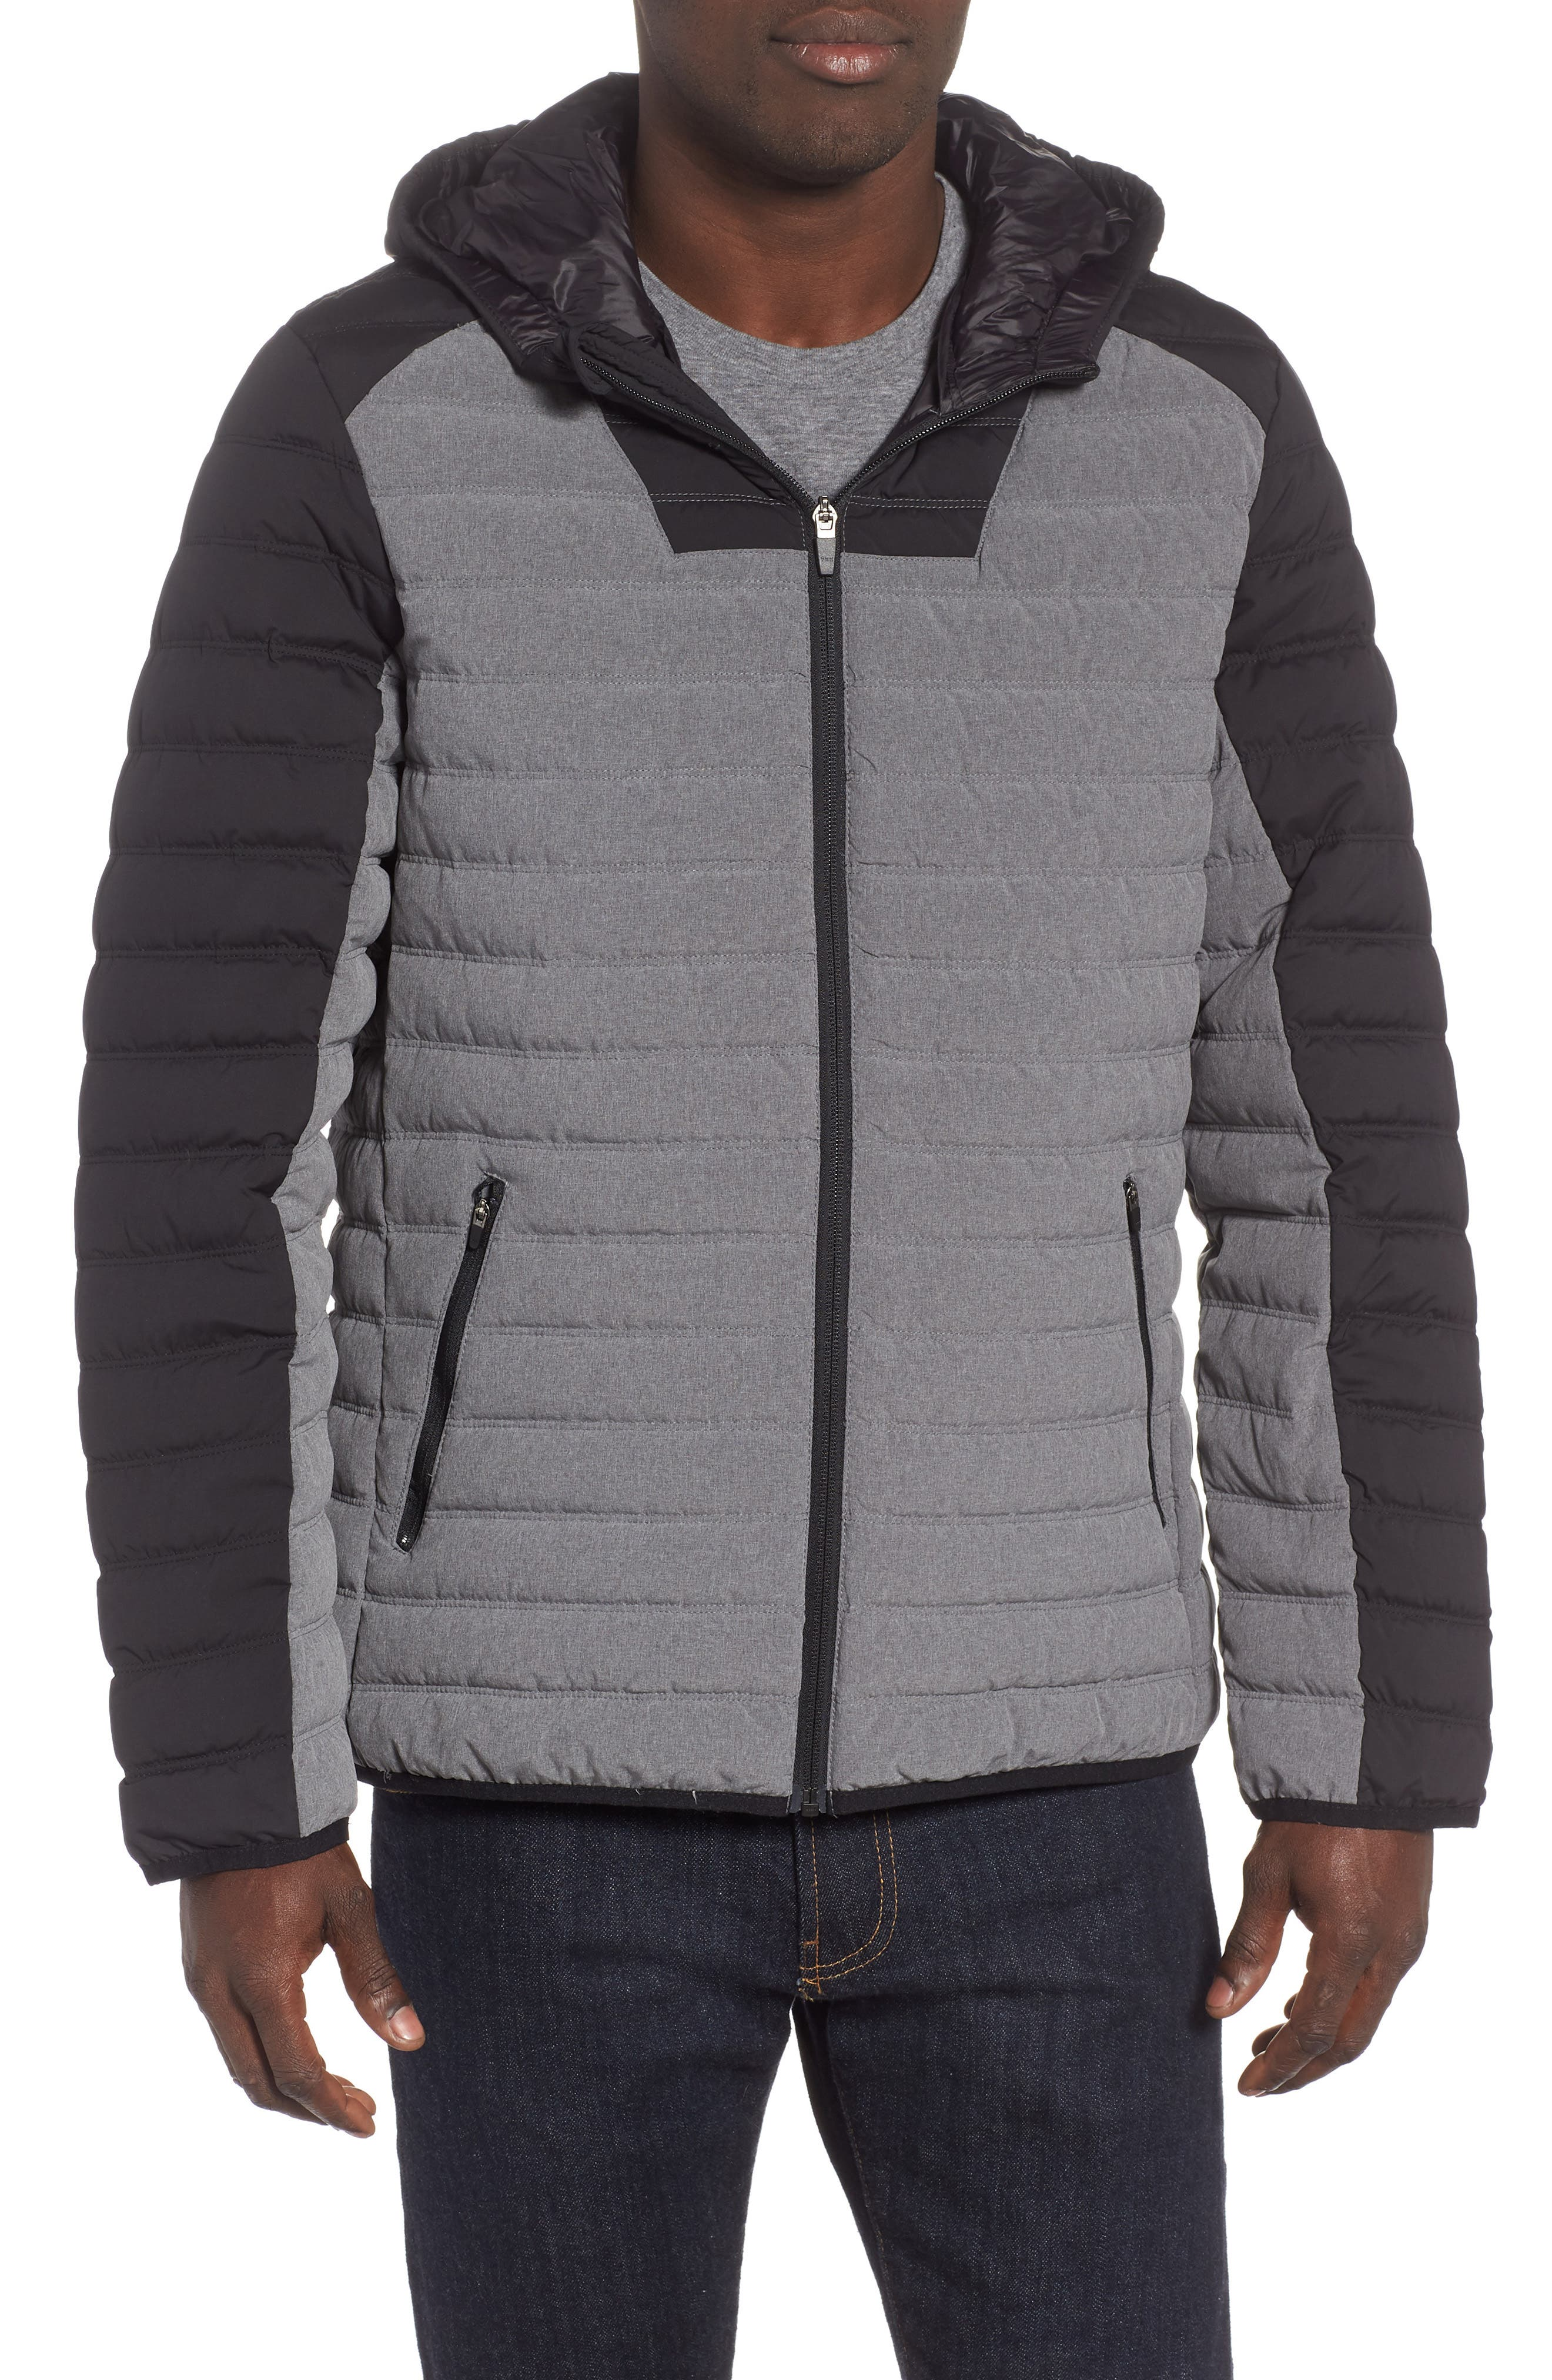 Hooded Water Resistant Down Jacket,                             Main thumbnail 1, color,                             BLACK GREY OBSIDIAN